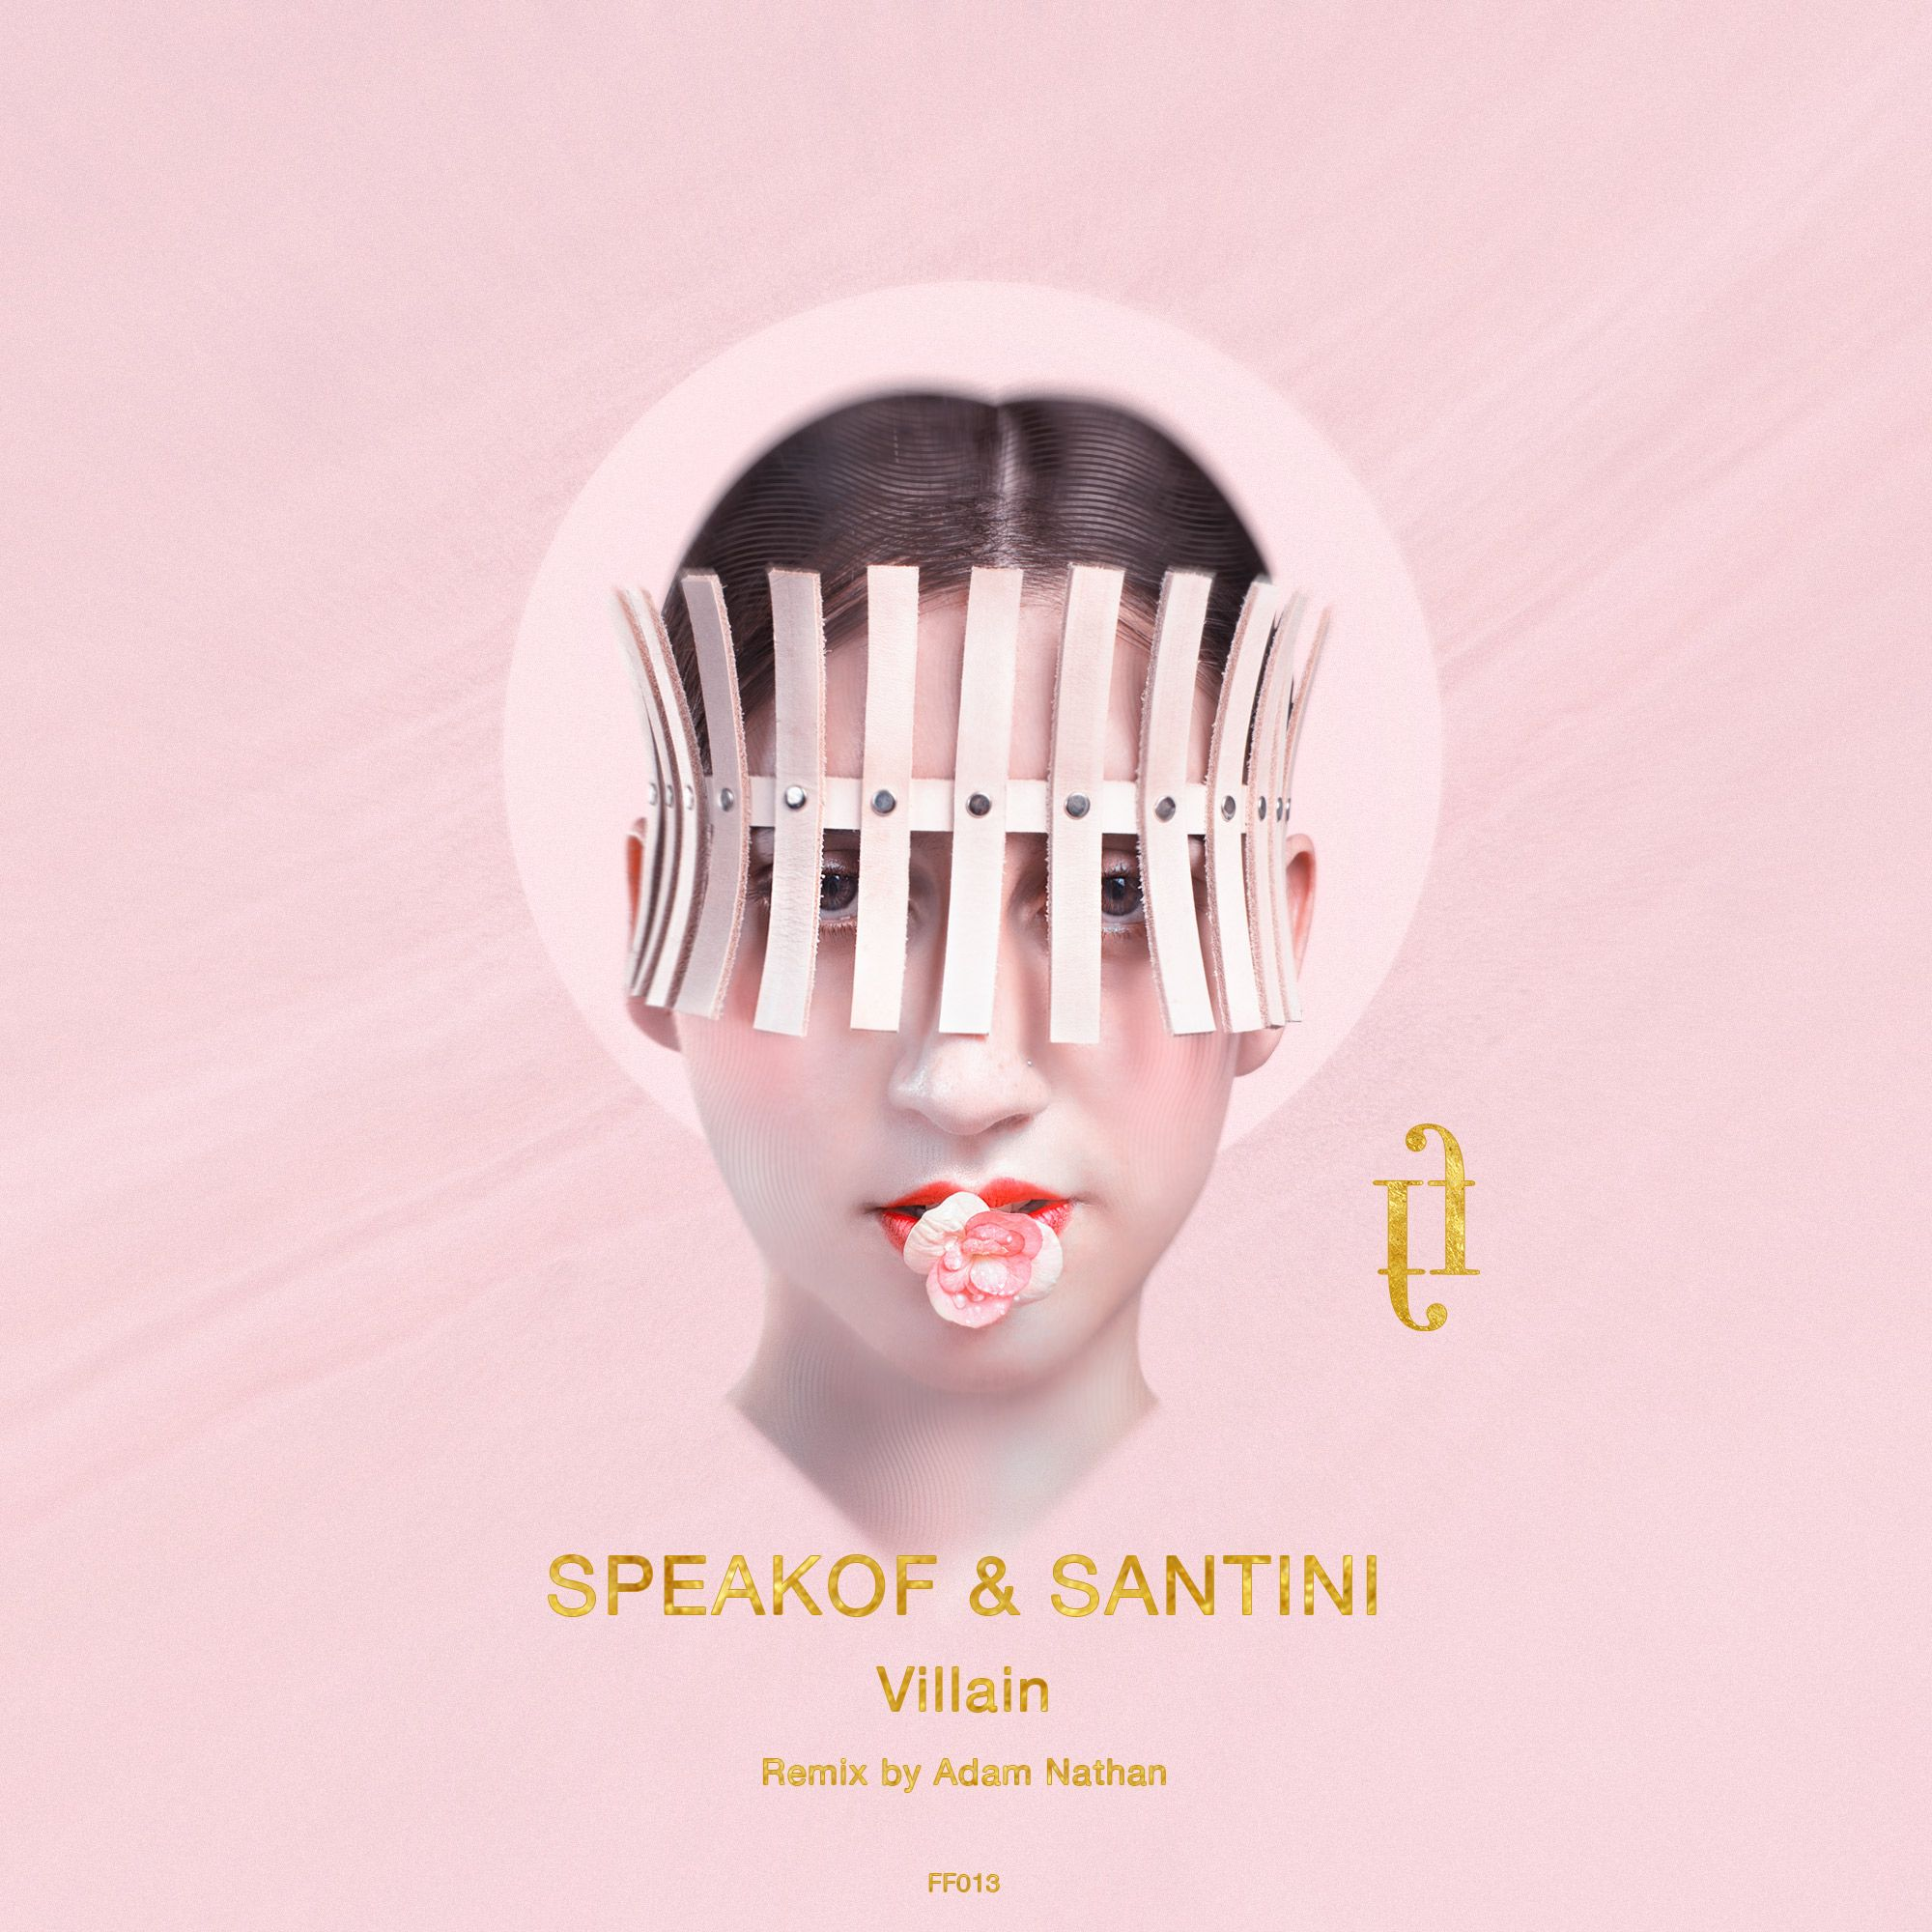 speakof_santini_-_villanin_ff013_coverart.jpg